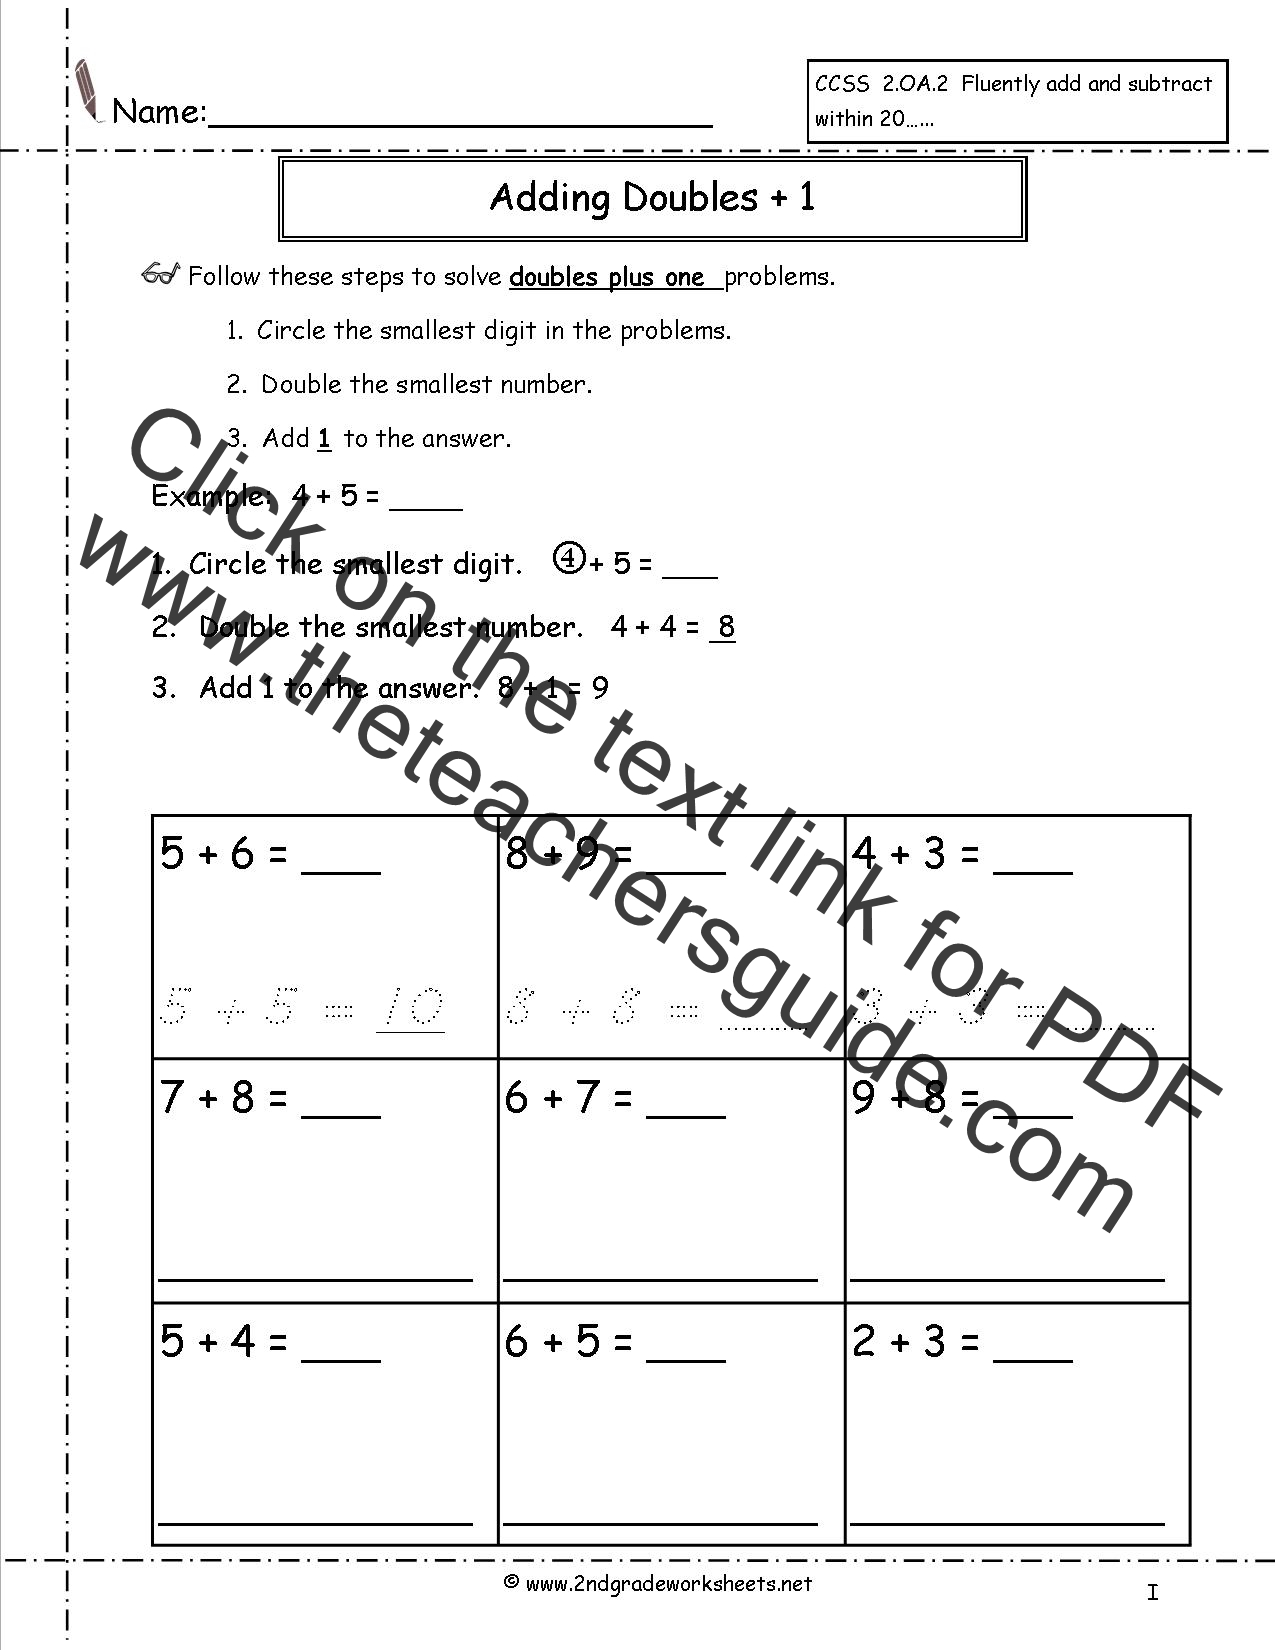 Printables Doubles Facts Worksheets 2nd Grade free single digit addition worksheets doubles plus one intro facts worksheet